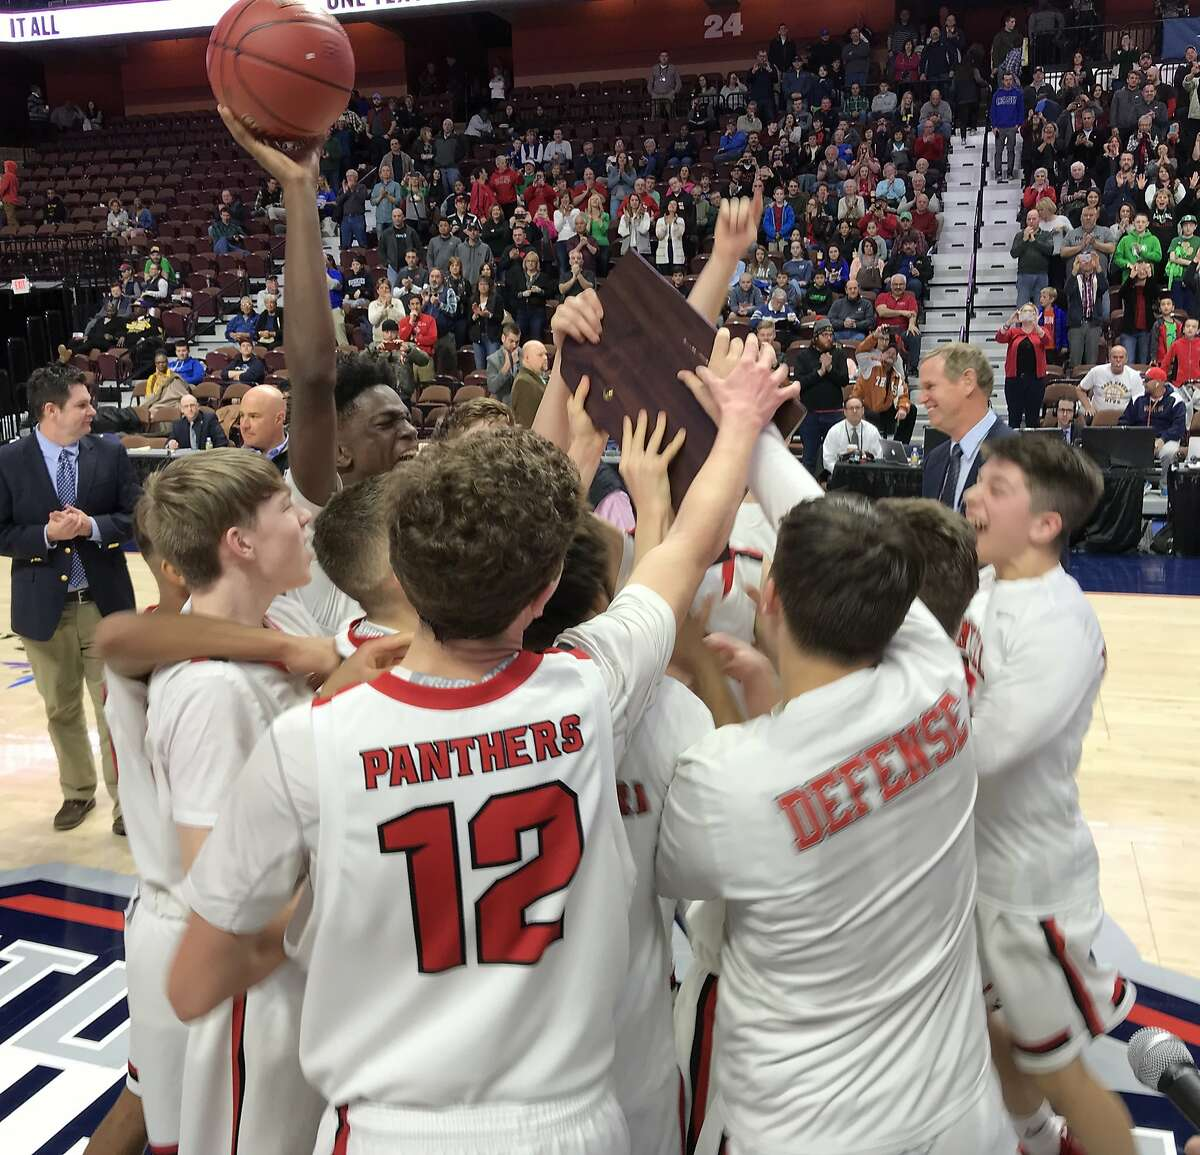 Members of the Cromwell boys basketball team celebrate with the championship plaque after their win in Saturday's Division V championship game in Uncasville.